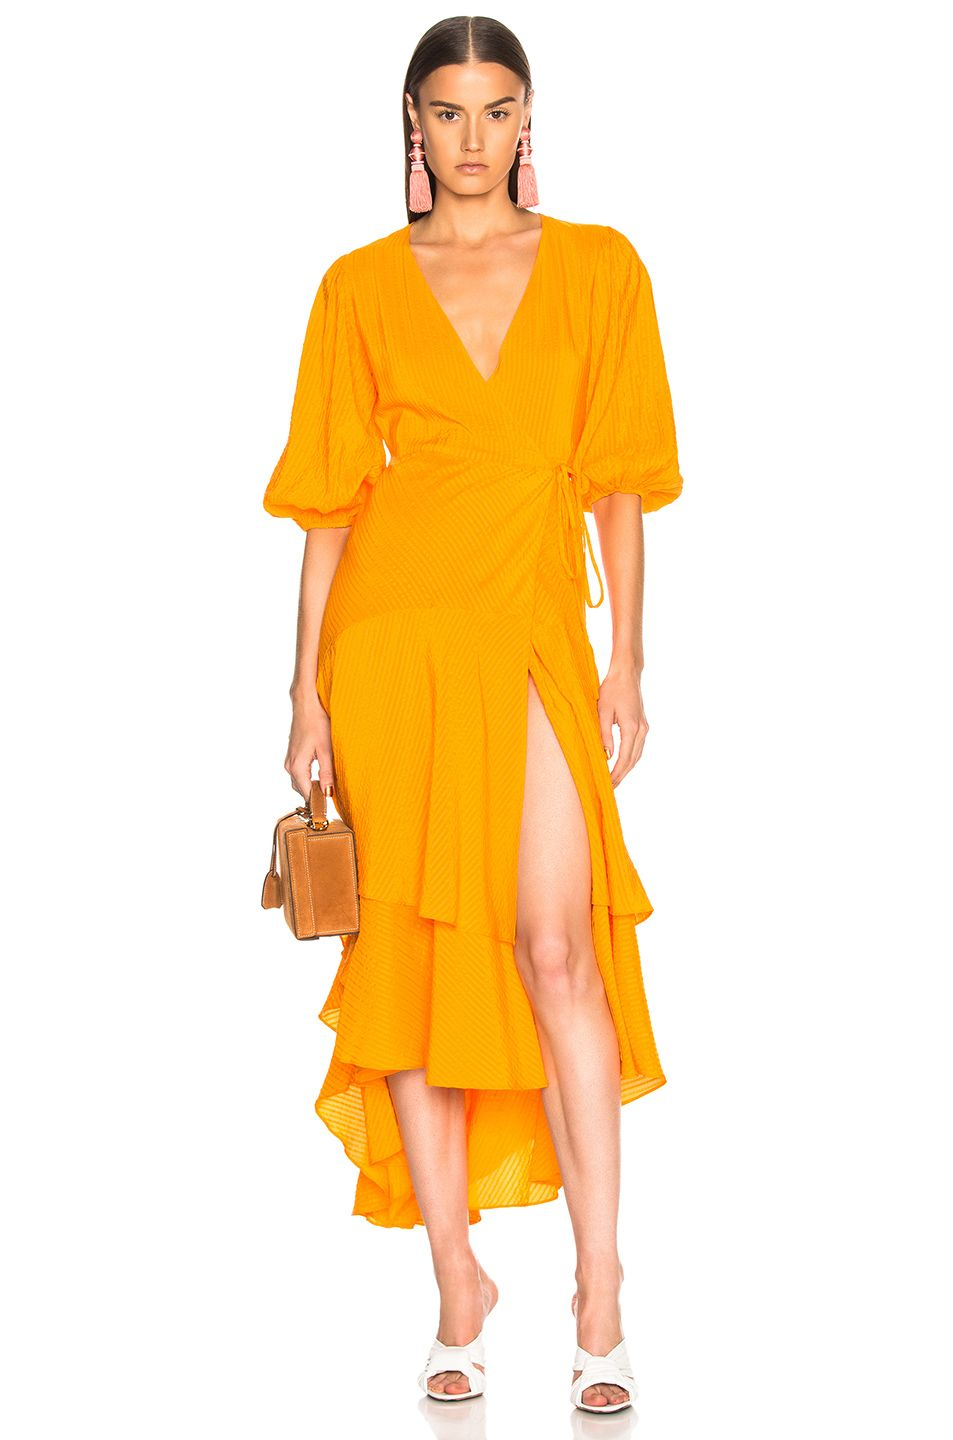 472bd139de Image 1 of Ganni Wilkie Seersucker Dress in Turmeric Orange